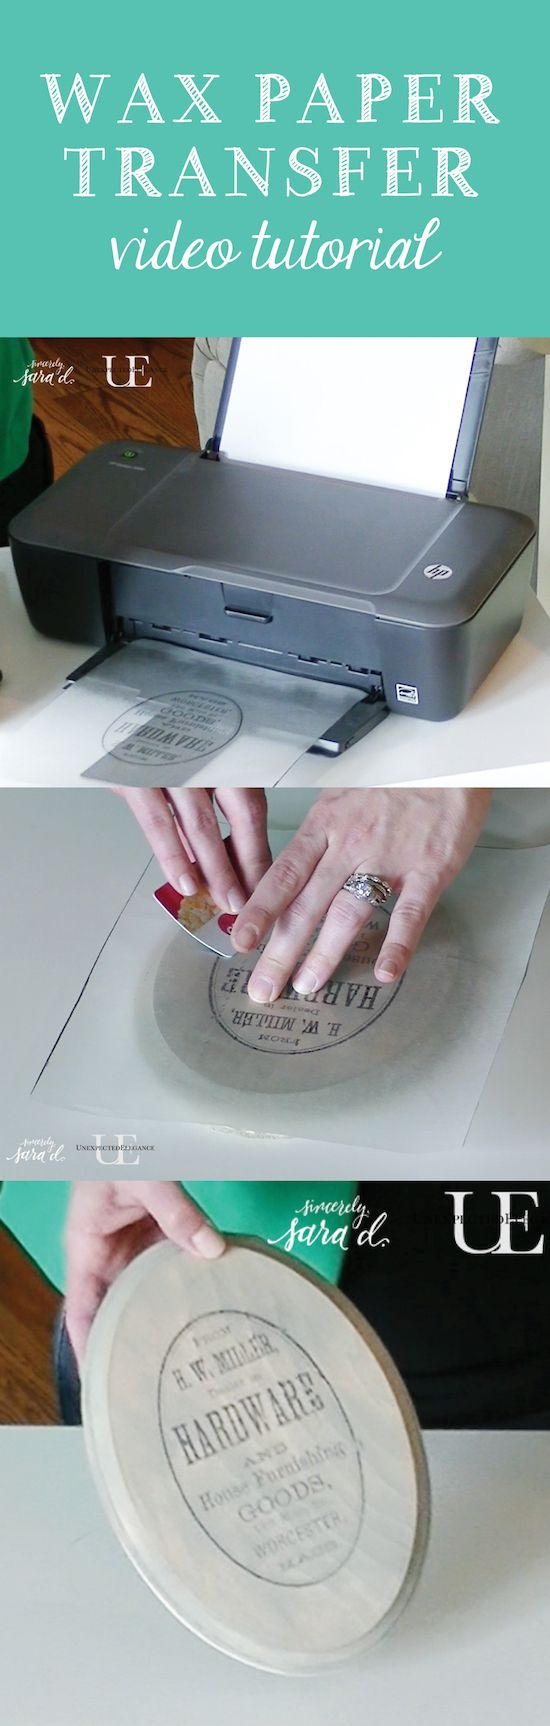 Wax Paper Video Tutorial*----------------Transferencia Papel de cera Video Tutorial -